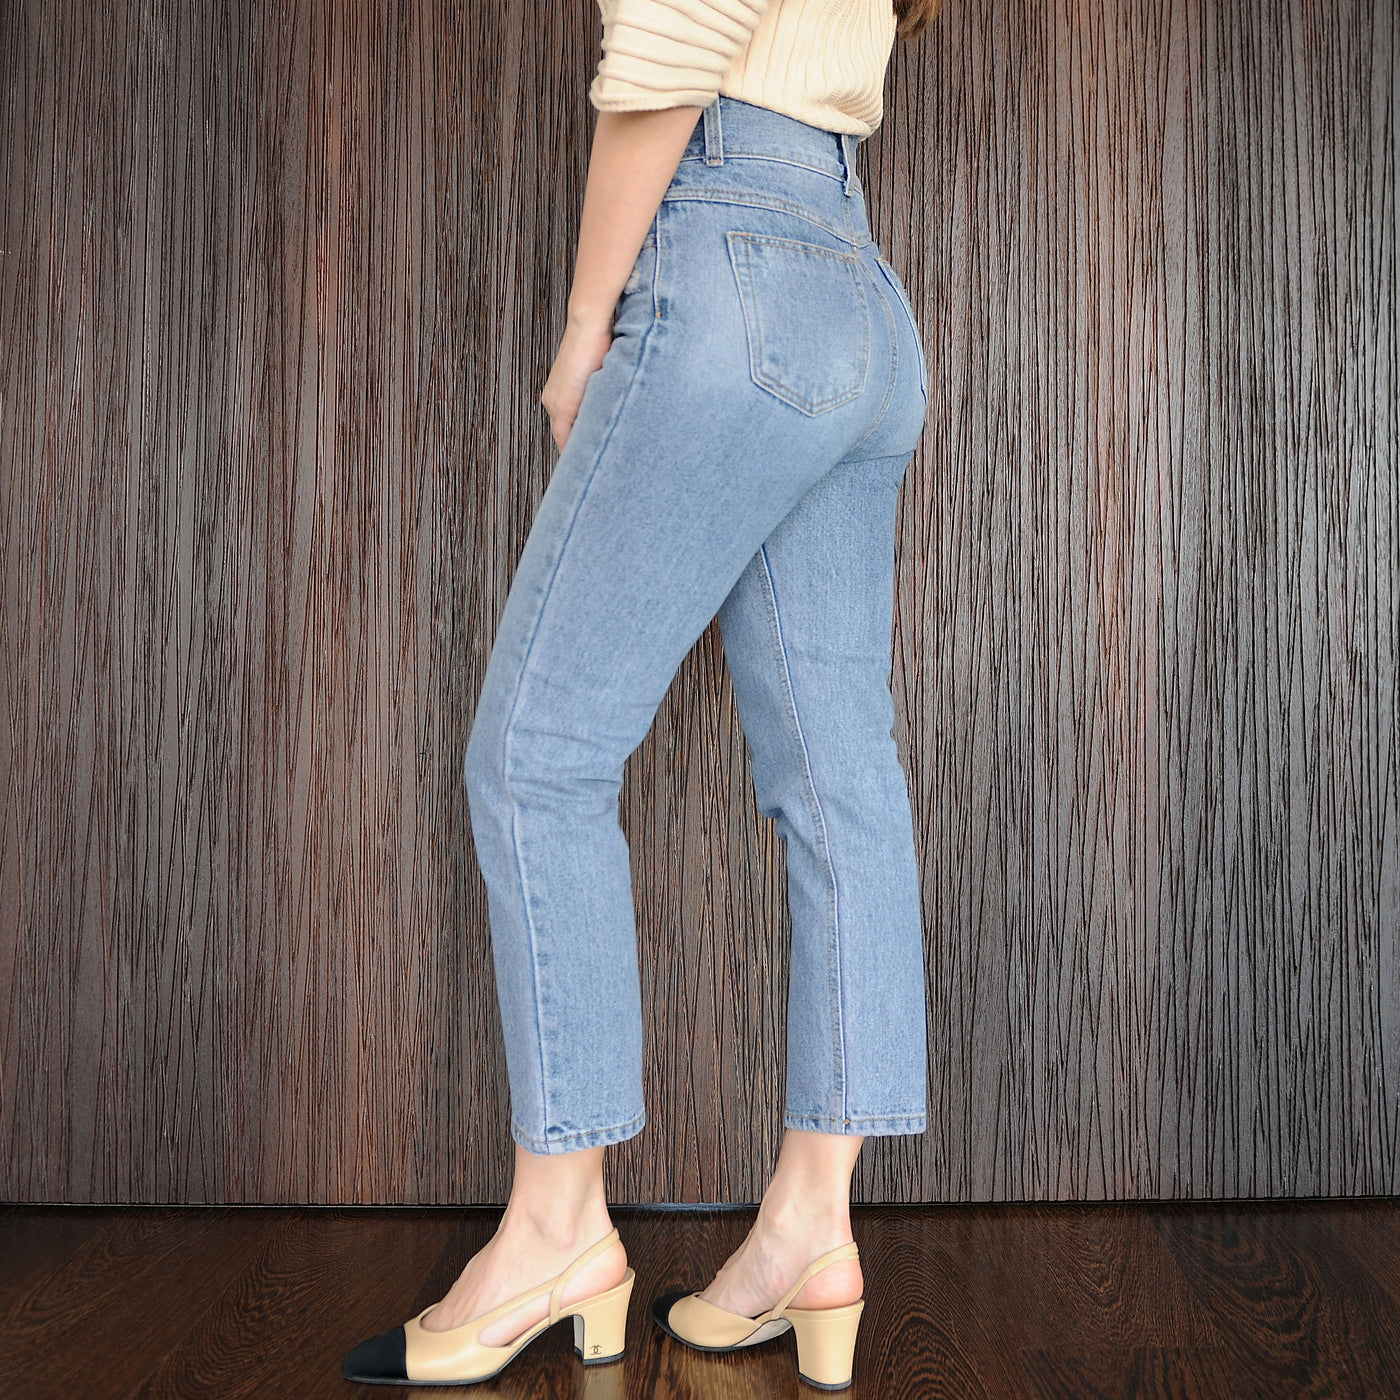 Vintage Inspired Denim High Waisted Pants - Marble Hive